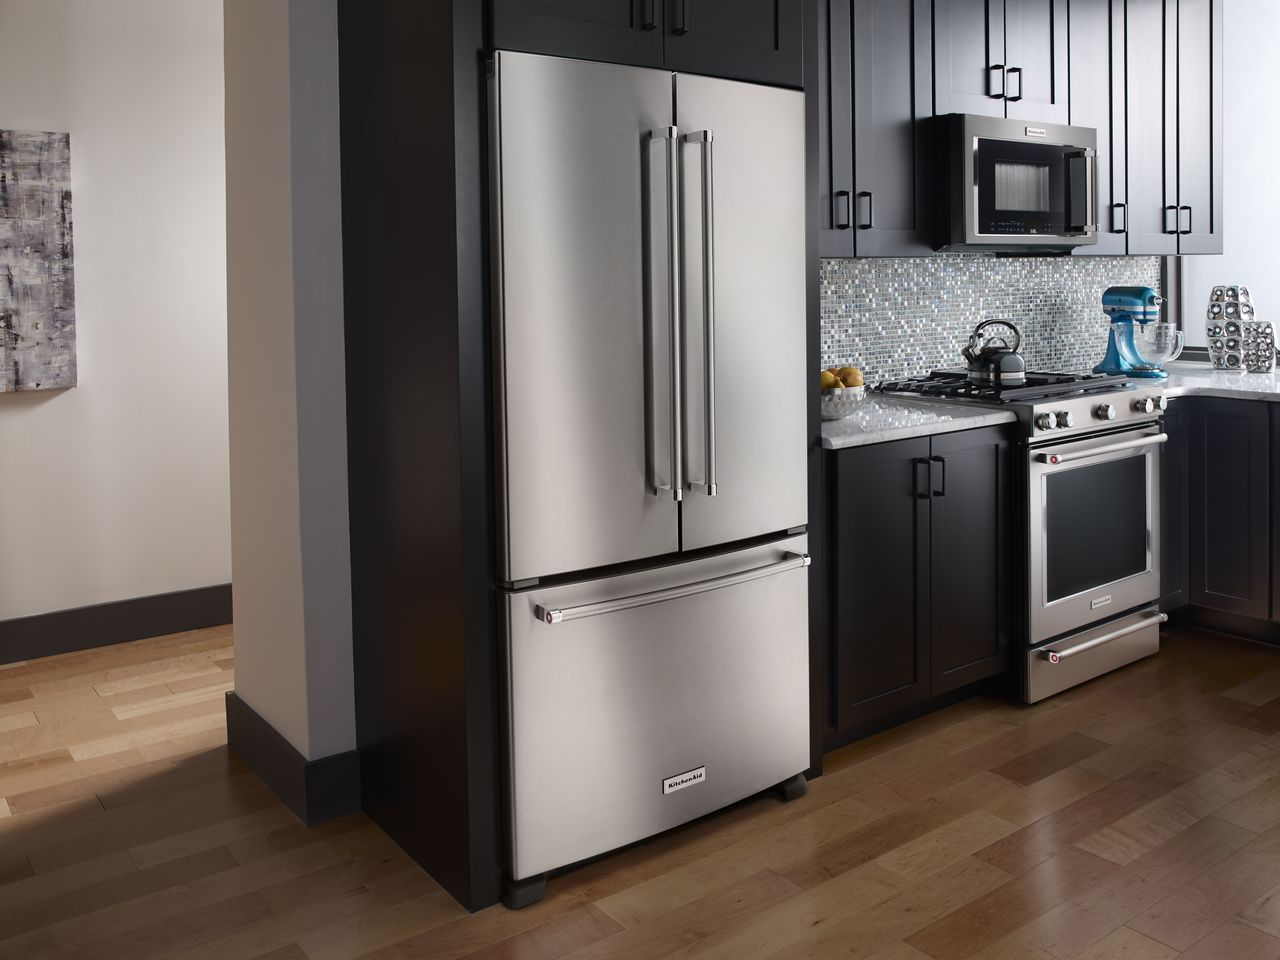 aid refrigerators a sounds reviewed vanity content stainless crazy refrigerator steel the kitchenaid black five com fridge door kitchen review